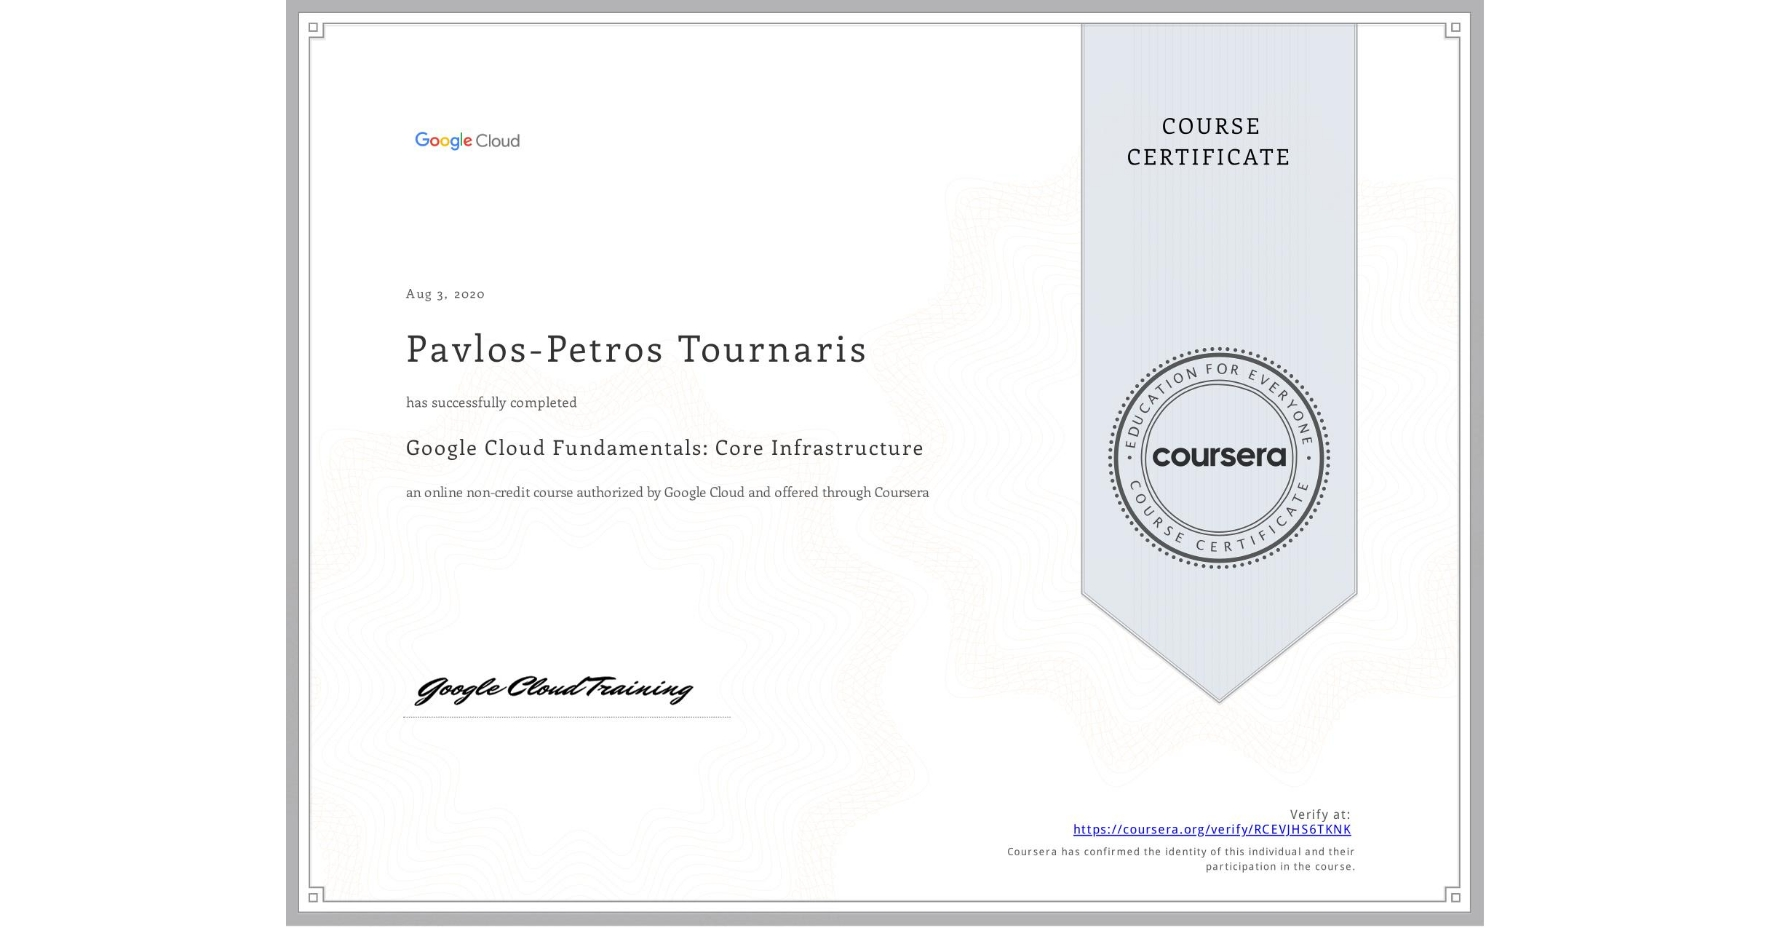 View certificate for Pavlos-Petros Tournaris, Google Cloud Platform Fundamentals: Core Infrastructure, an online non-credit course authorized by Google Cloud and offered through Coursera